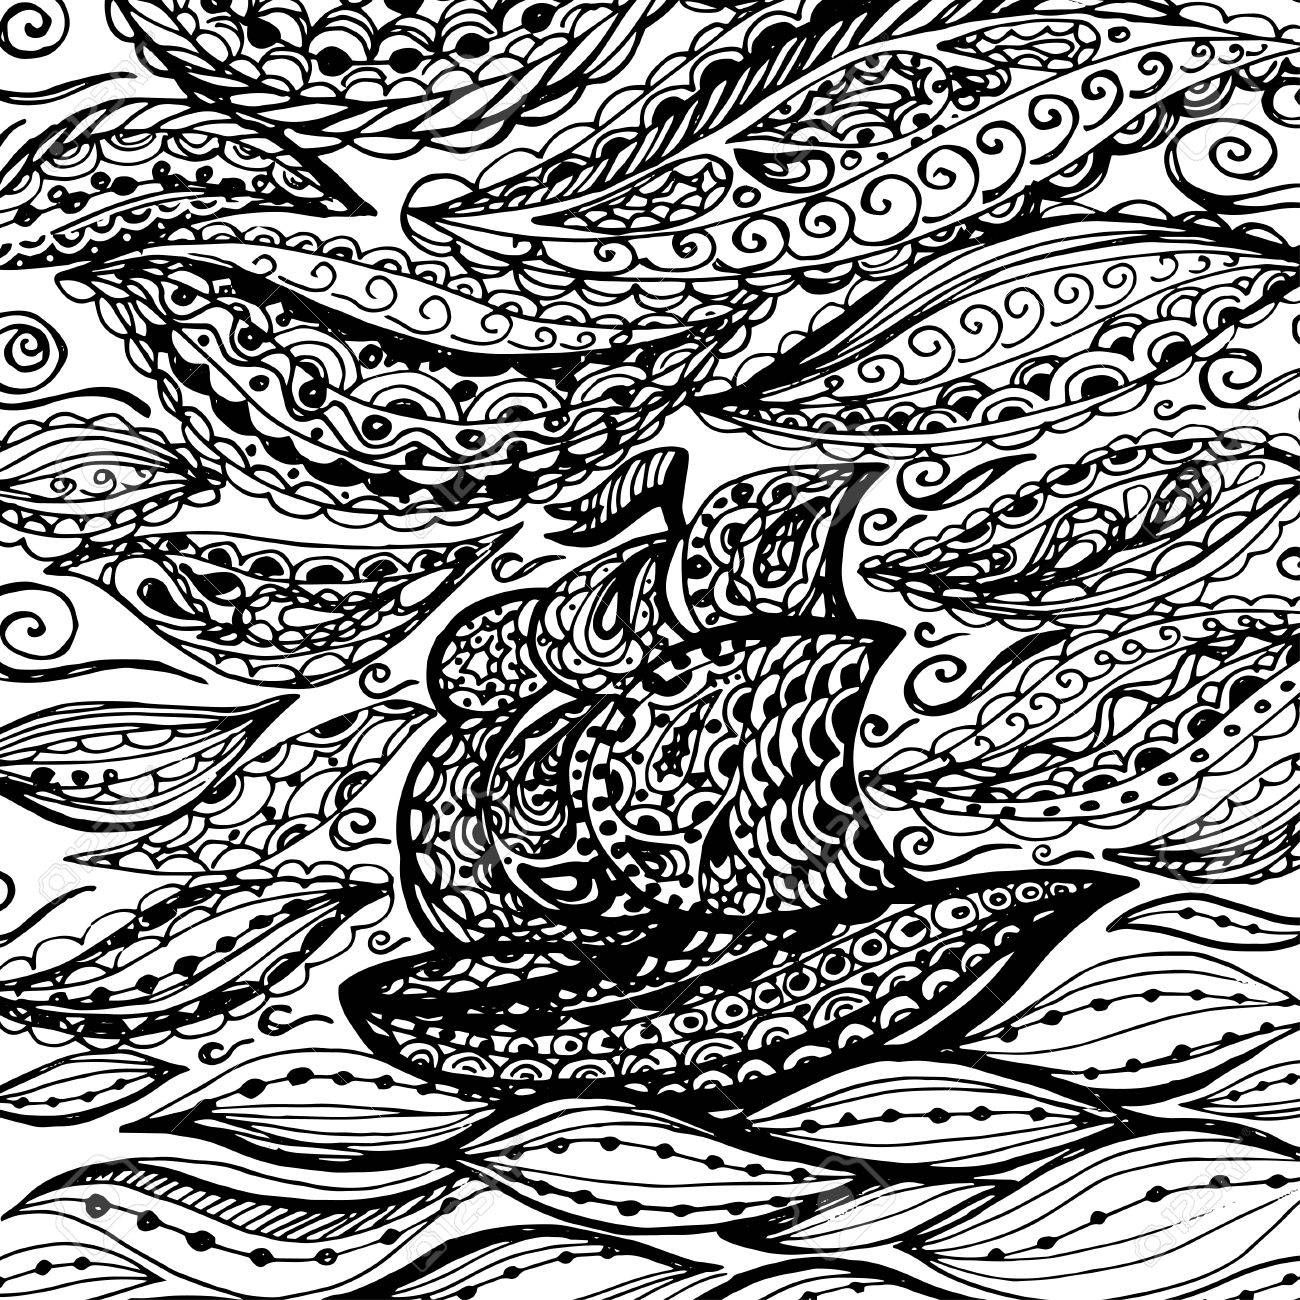 Ship In The Sea And Storm Graphic Illustration Of Boat Paisley Fighting Coloring Pages Food With Faces Young Christian Princess Dresses Fall Leaf Page Coding